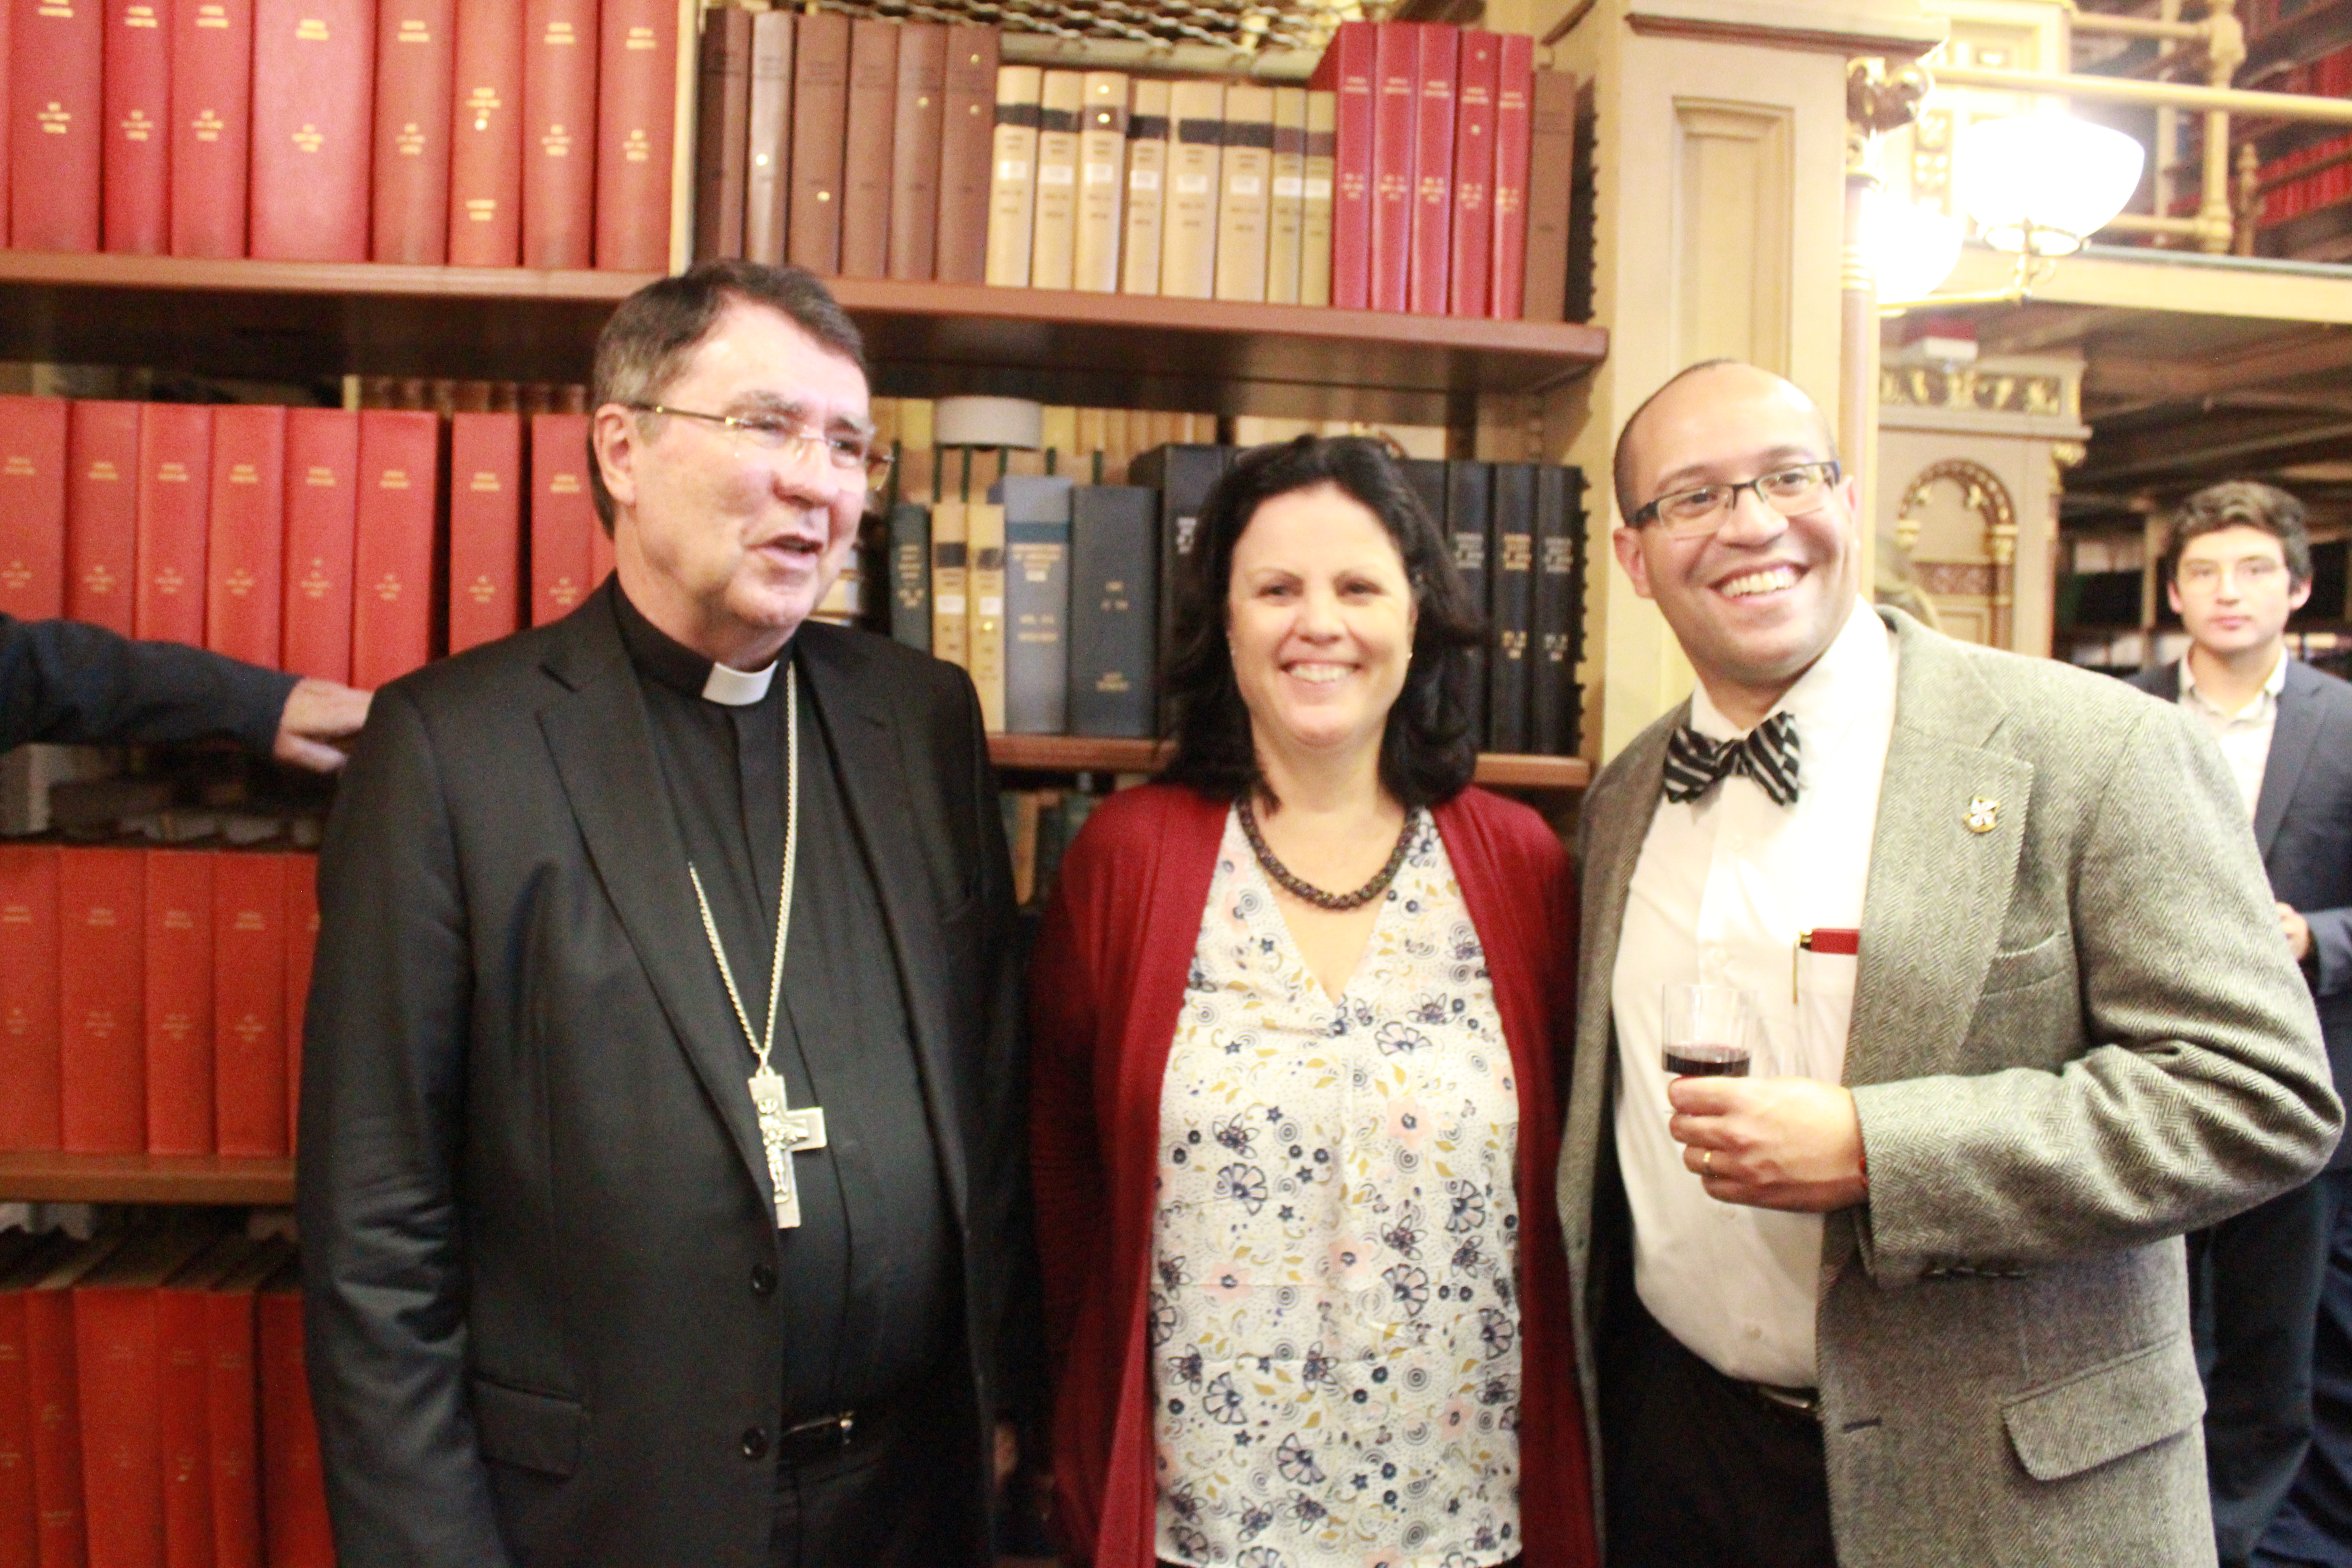 Two participants smile as they meet Archbishop Pierre in Riggs Library following the event.